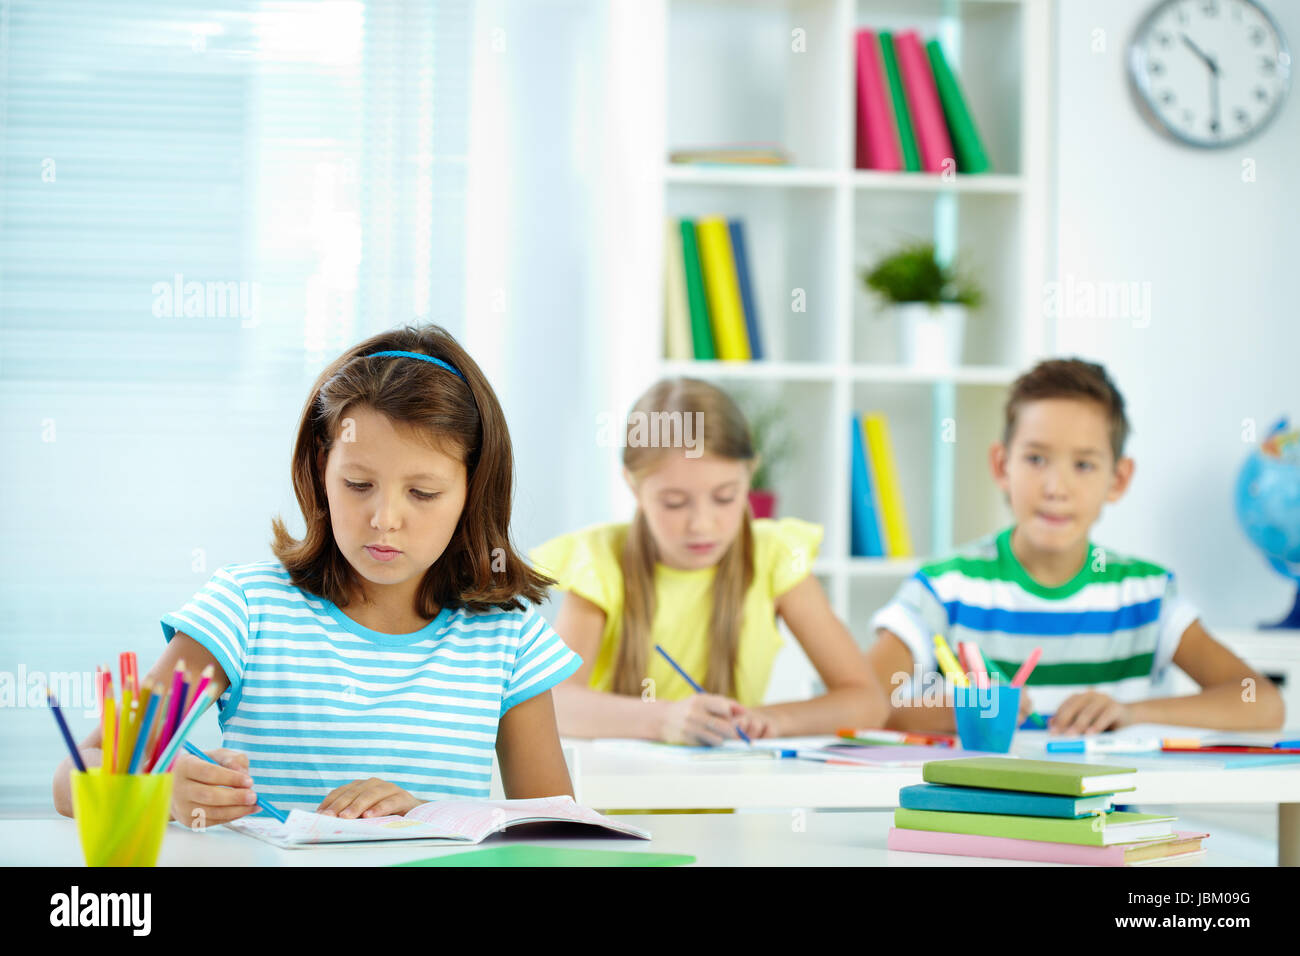 Serious girl drawing at workplace with schoolmates on background - Stock Image